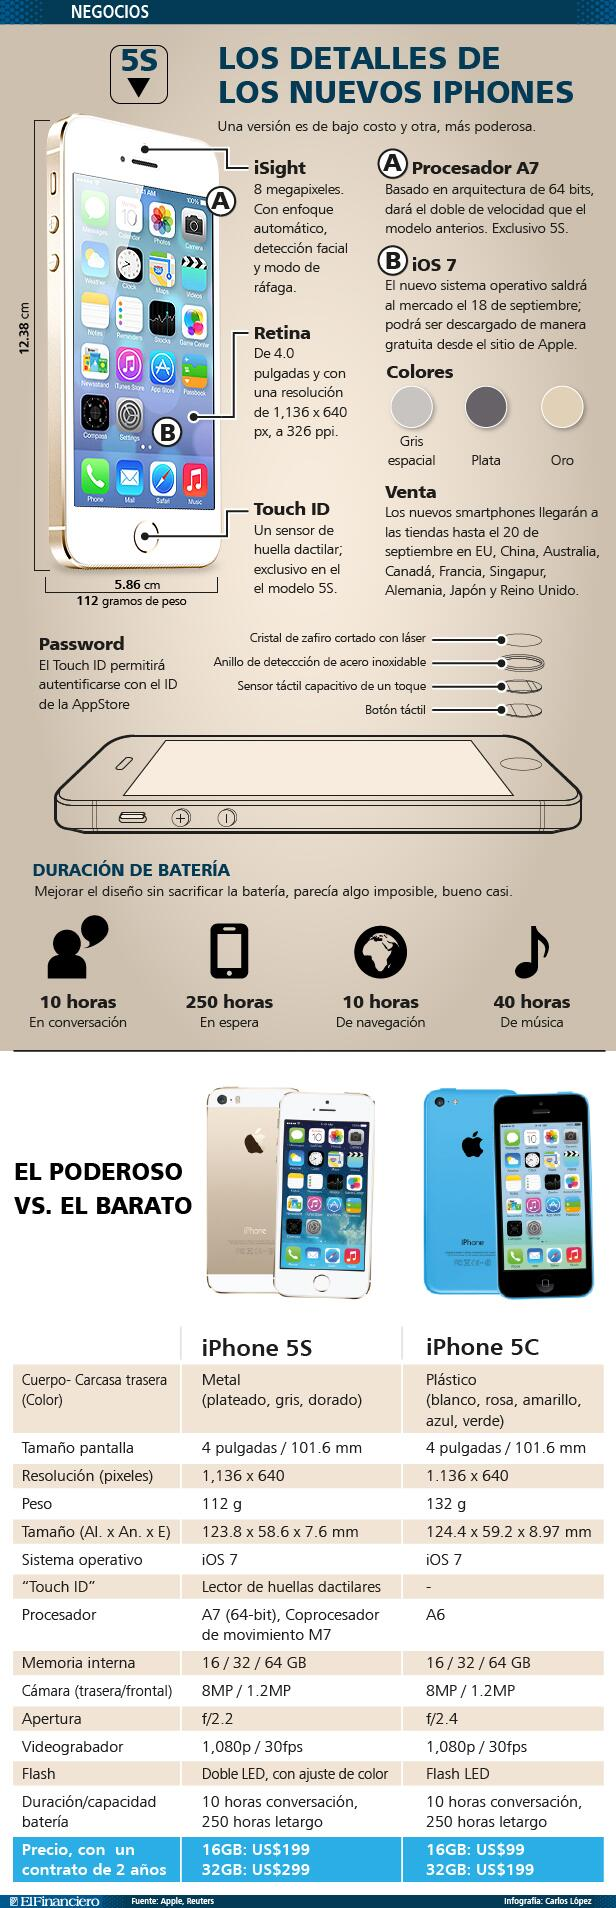 infografia_iphone_5c_y_5s